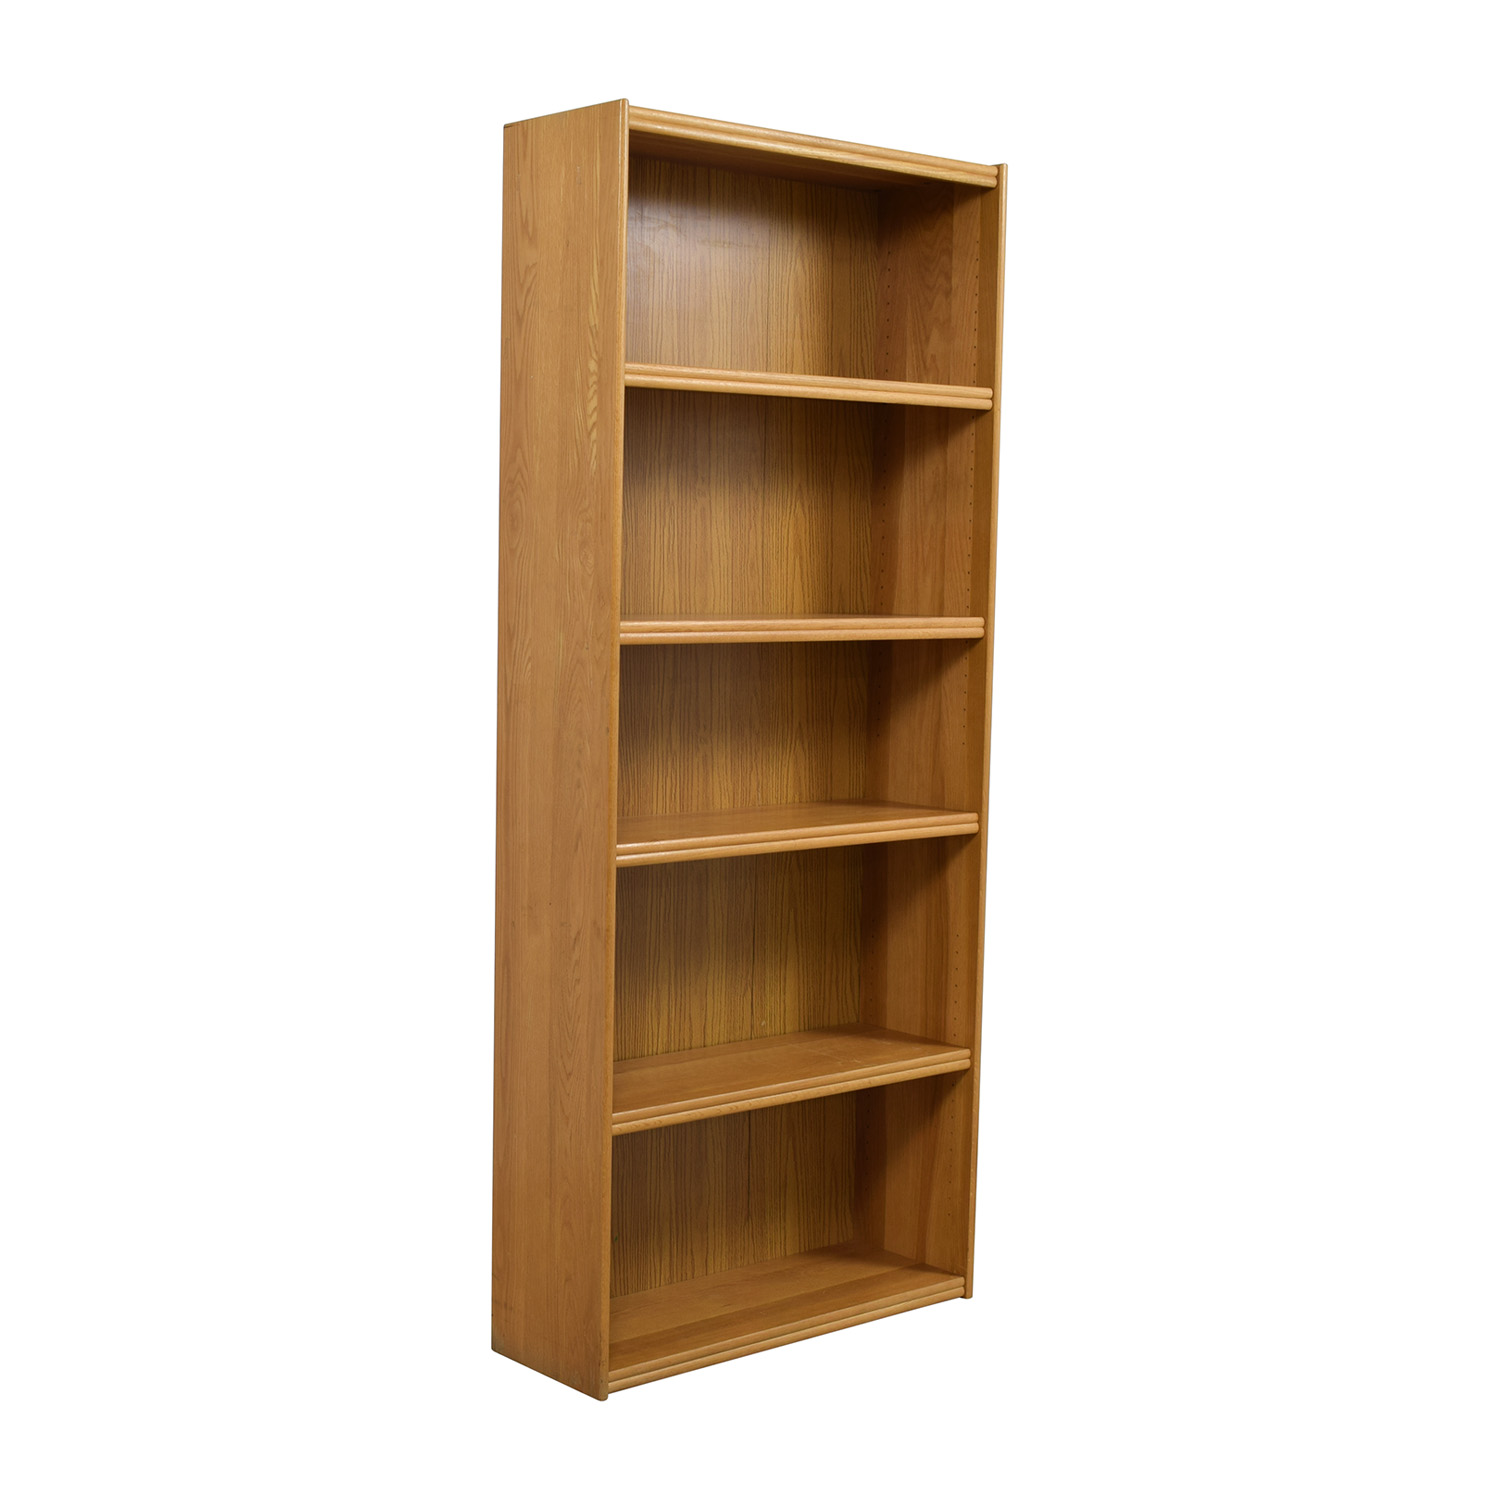 shop Tall Five Shelf Bookshelf online